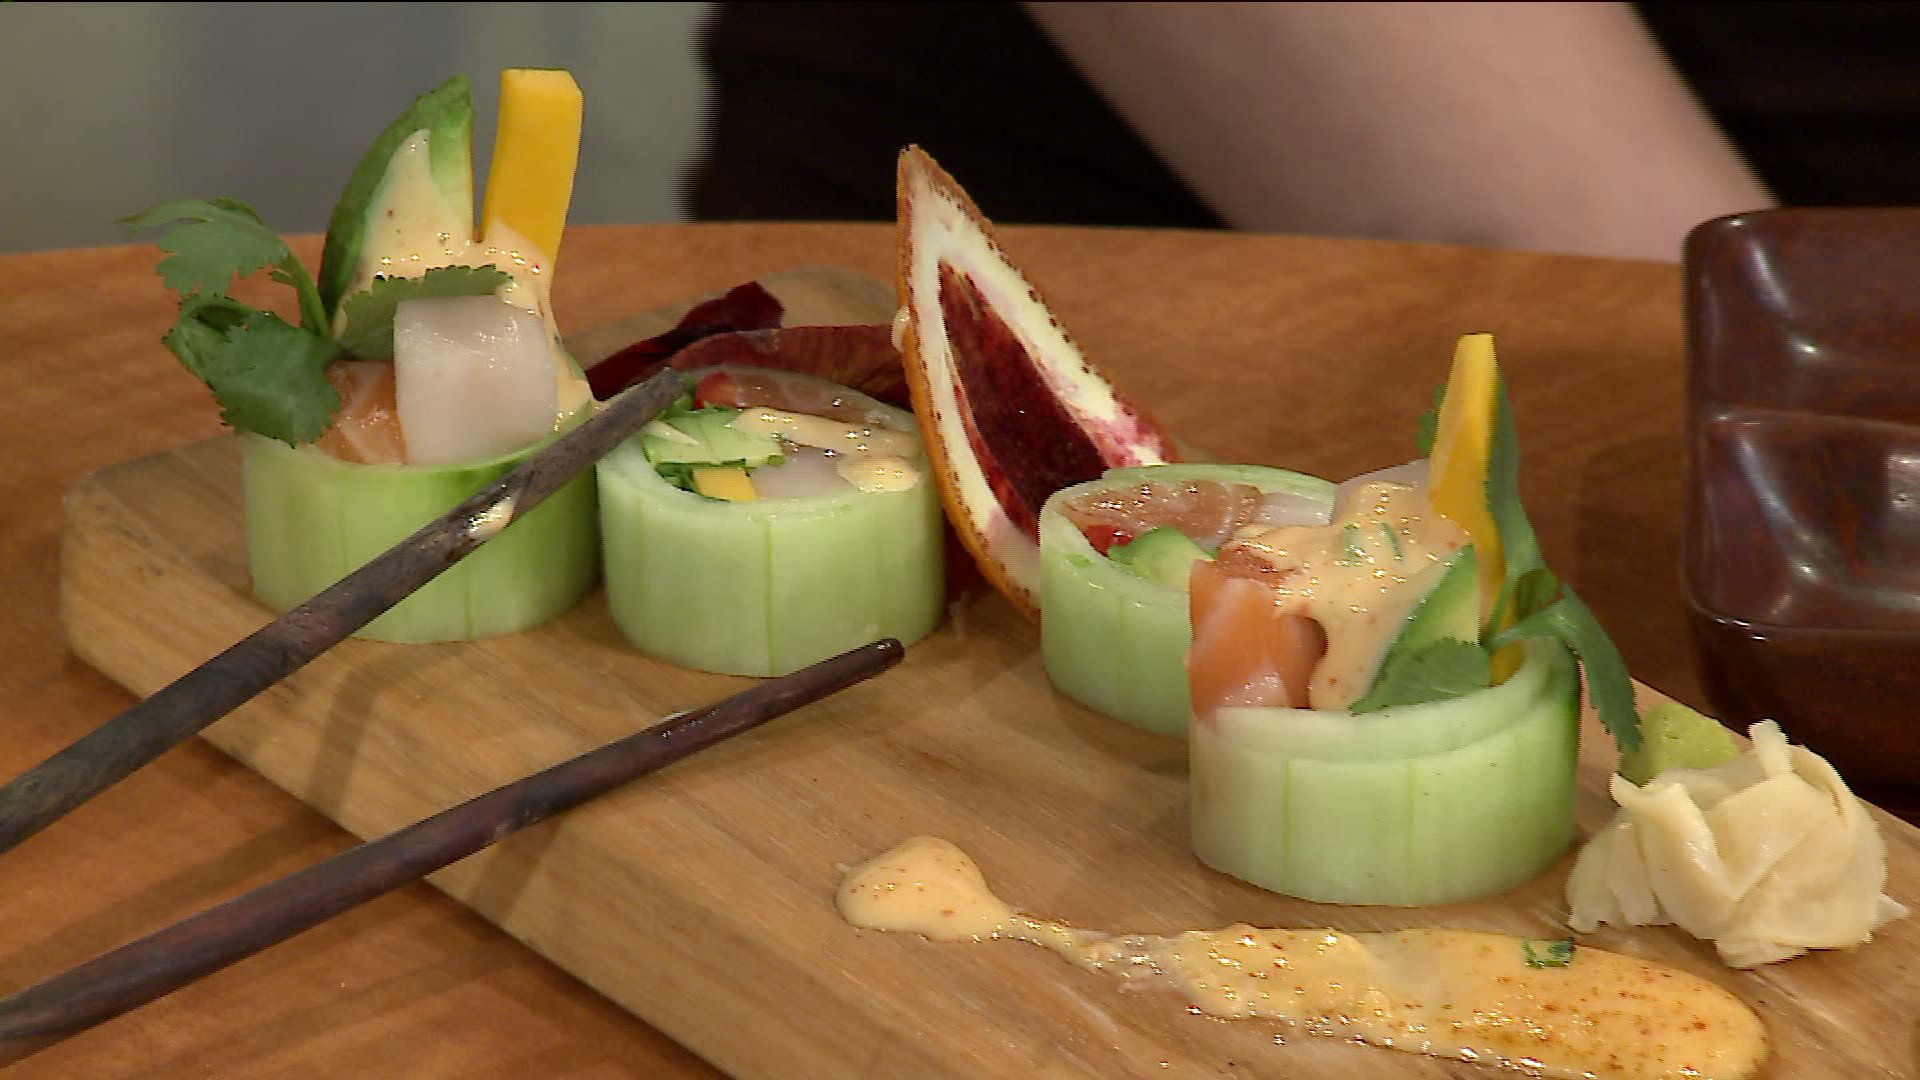 How To Make Cucumber-Wrapped Sushi